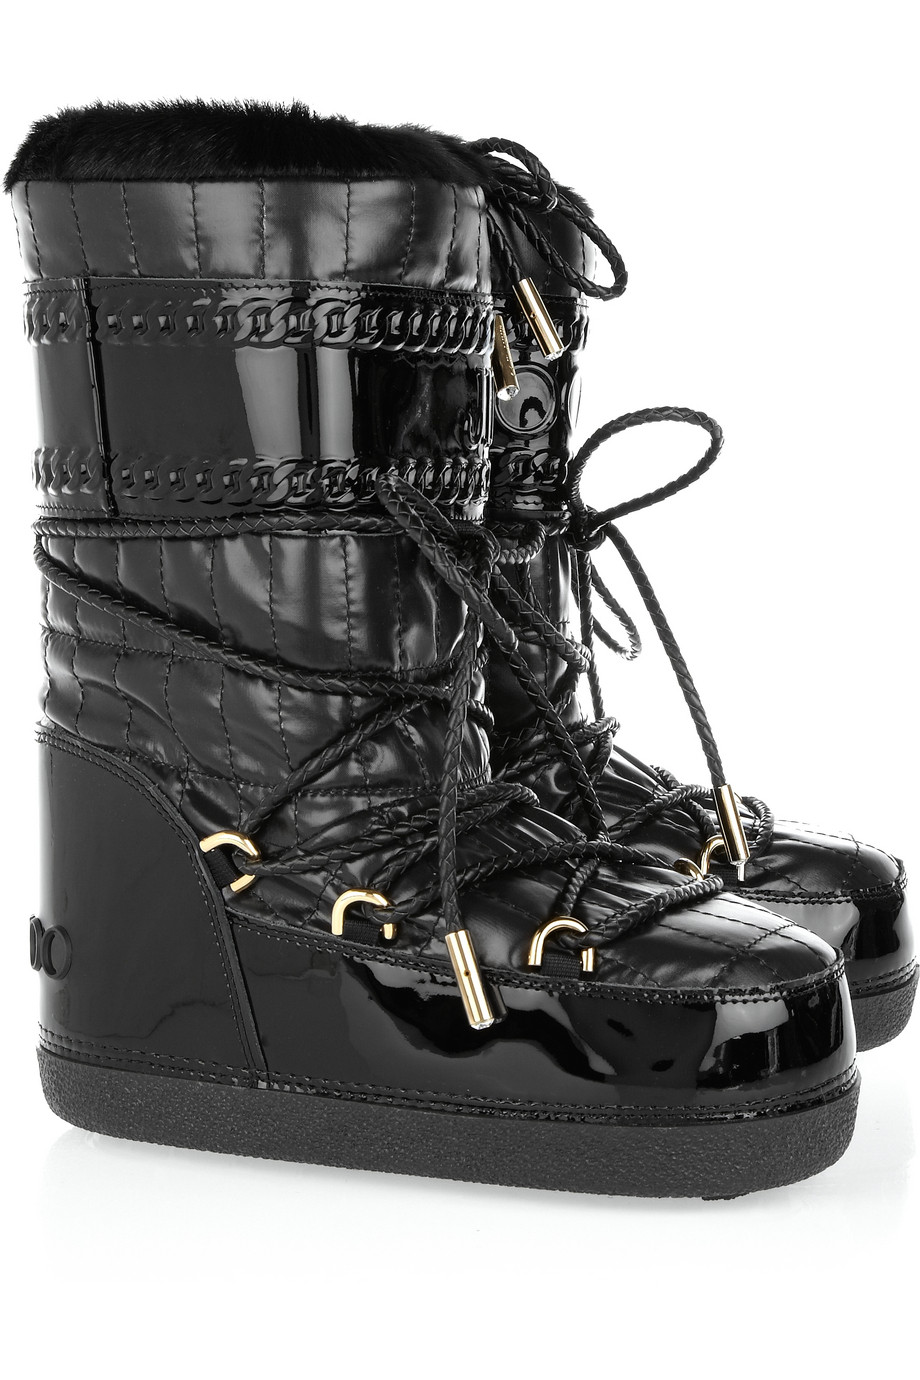 c335b1cbb76f Couture Snow Boots – Winter Luxe Look Designer Boots